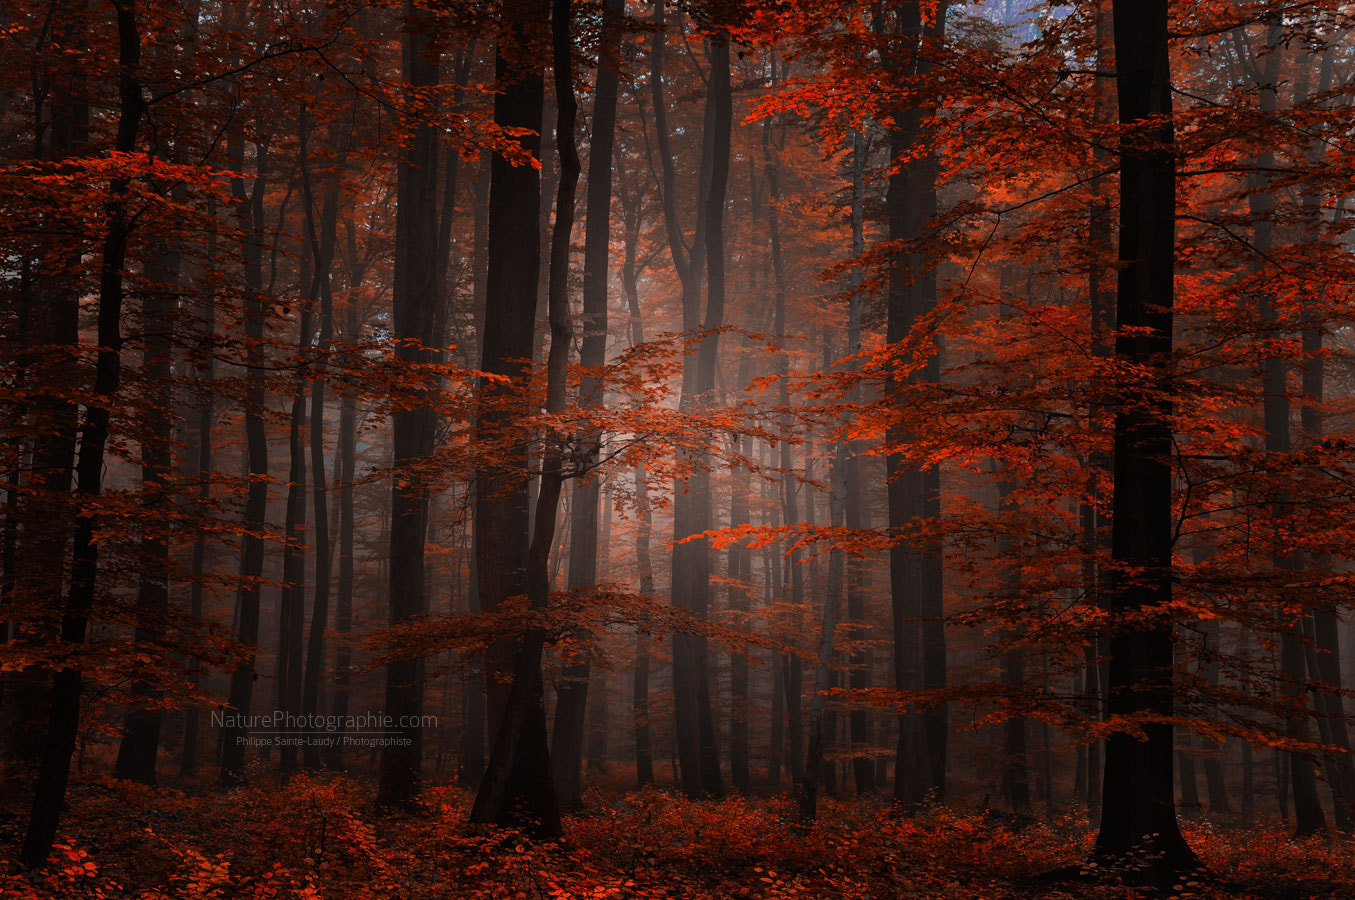 Photograph Spiritual Wood by Philippe Sainte-Laudy on 500px